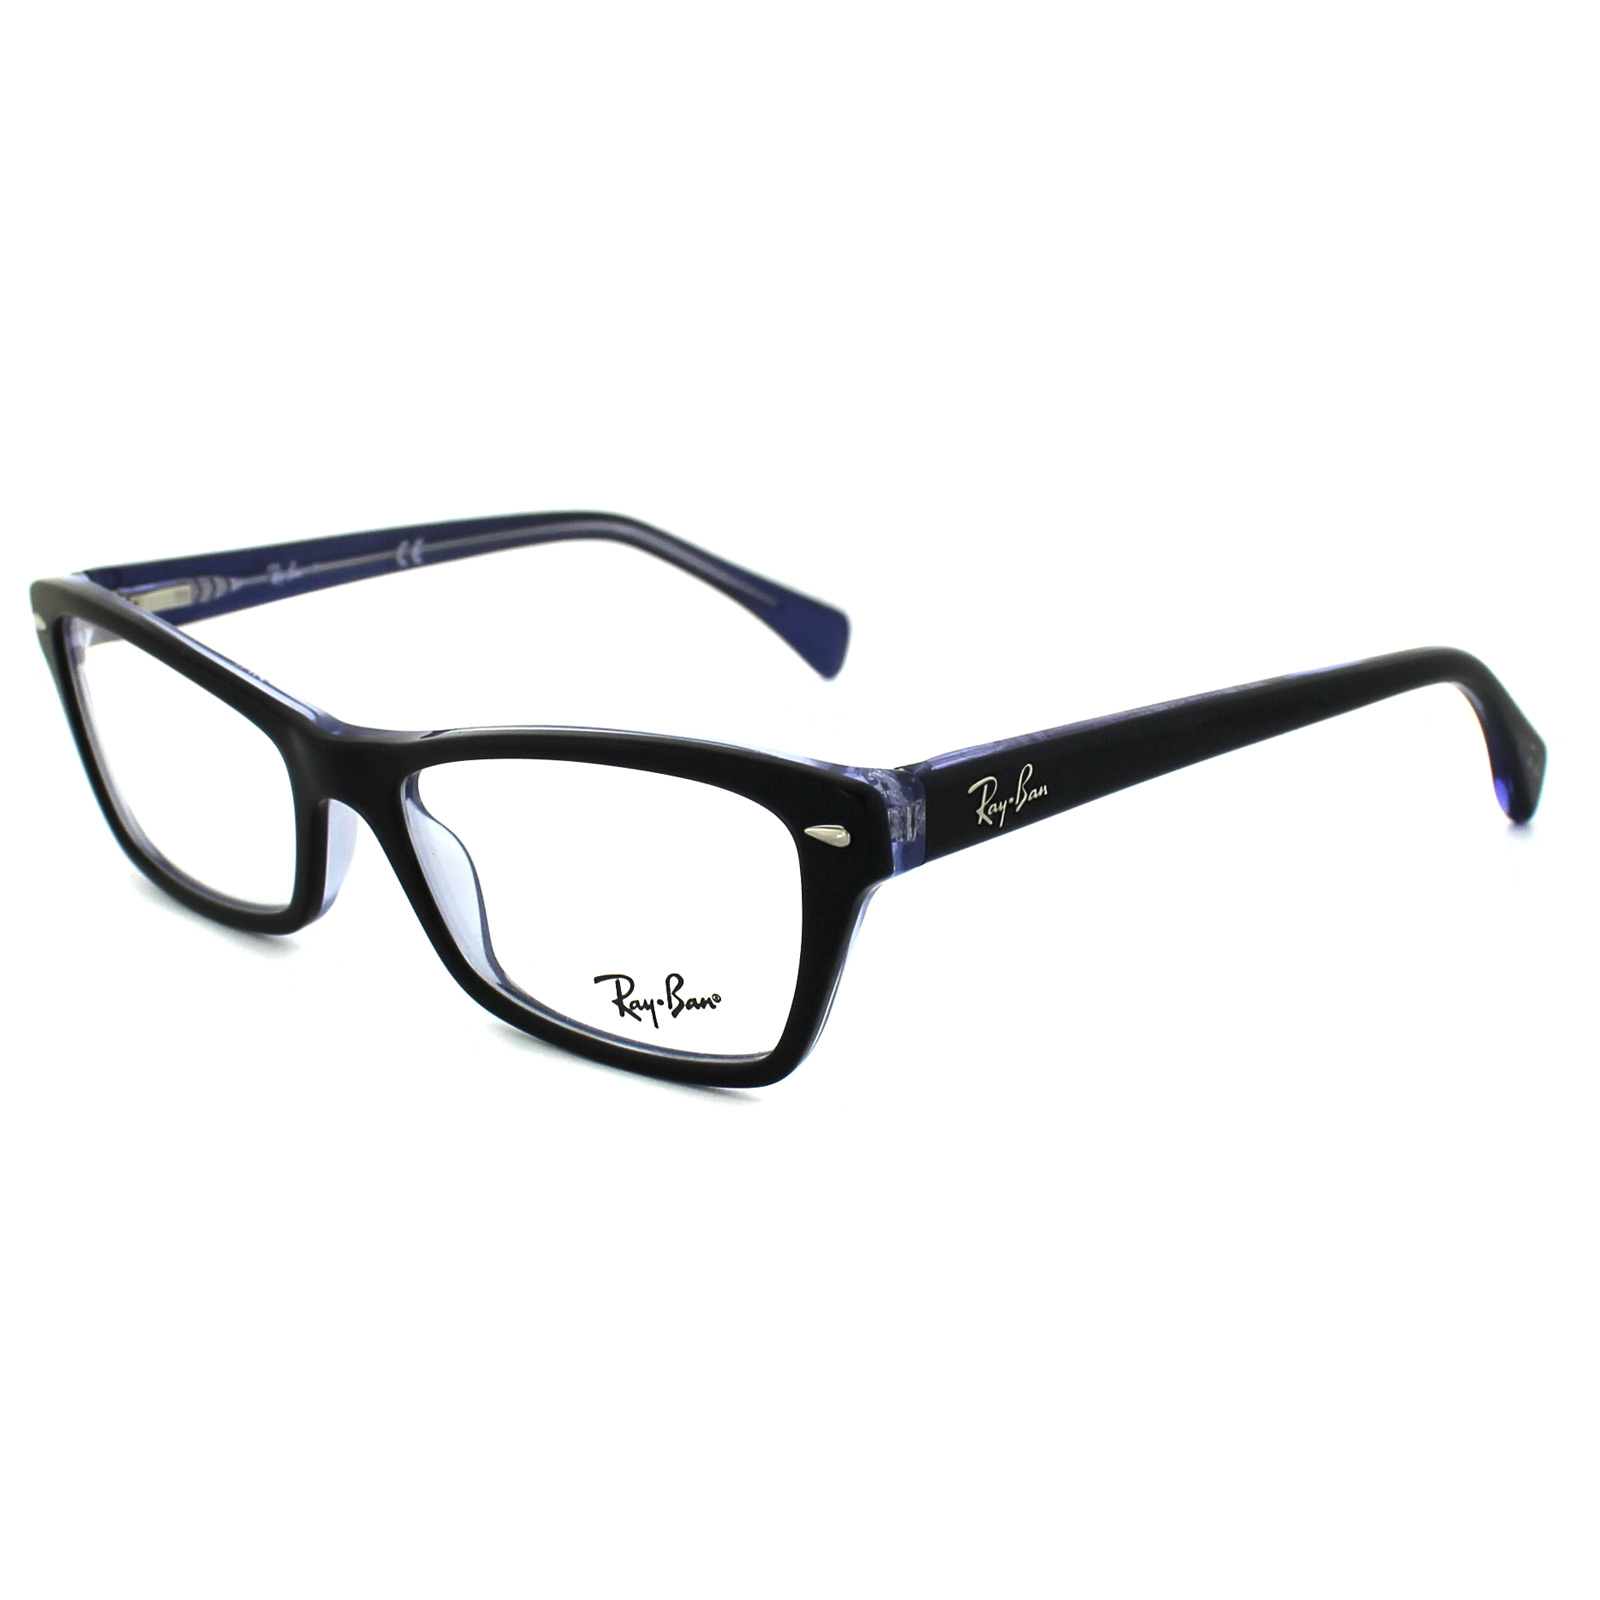 sentinel ray ban glasses frames 5256 5190 top black on violet